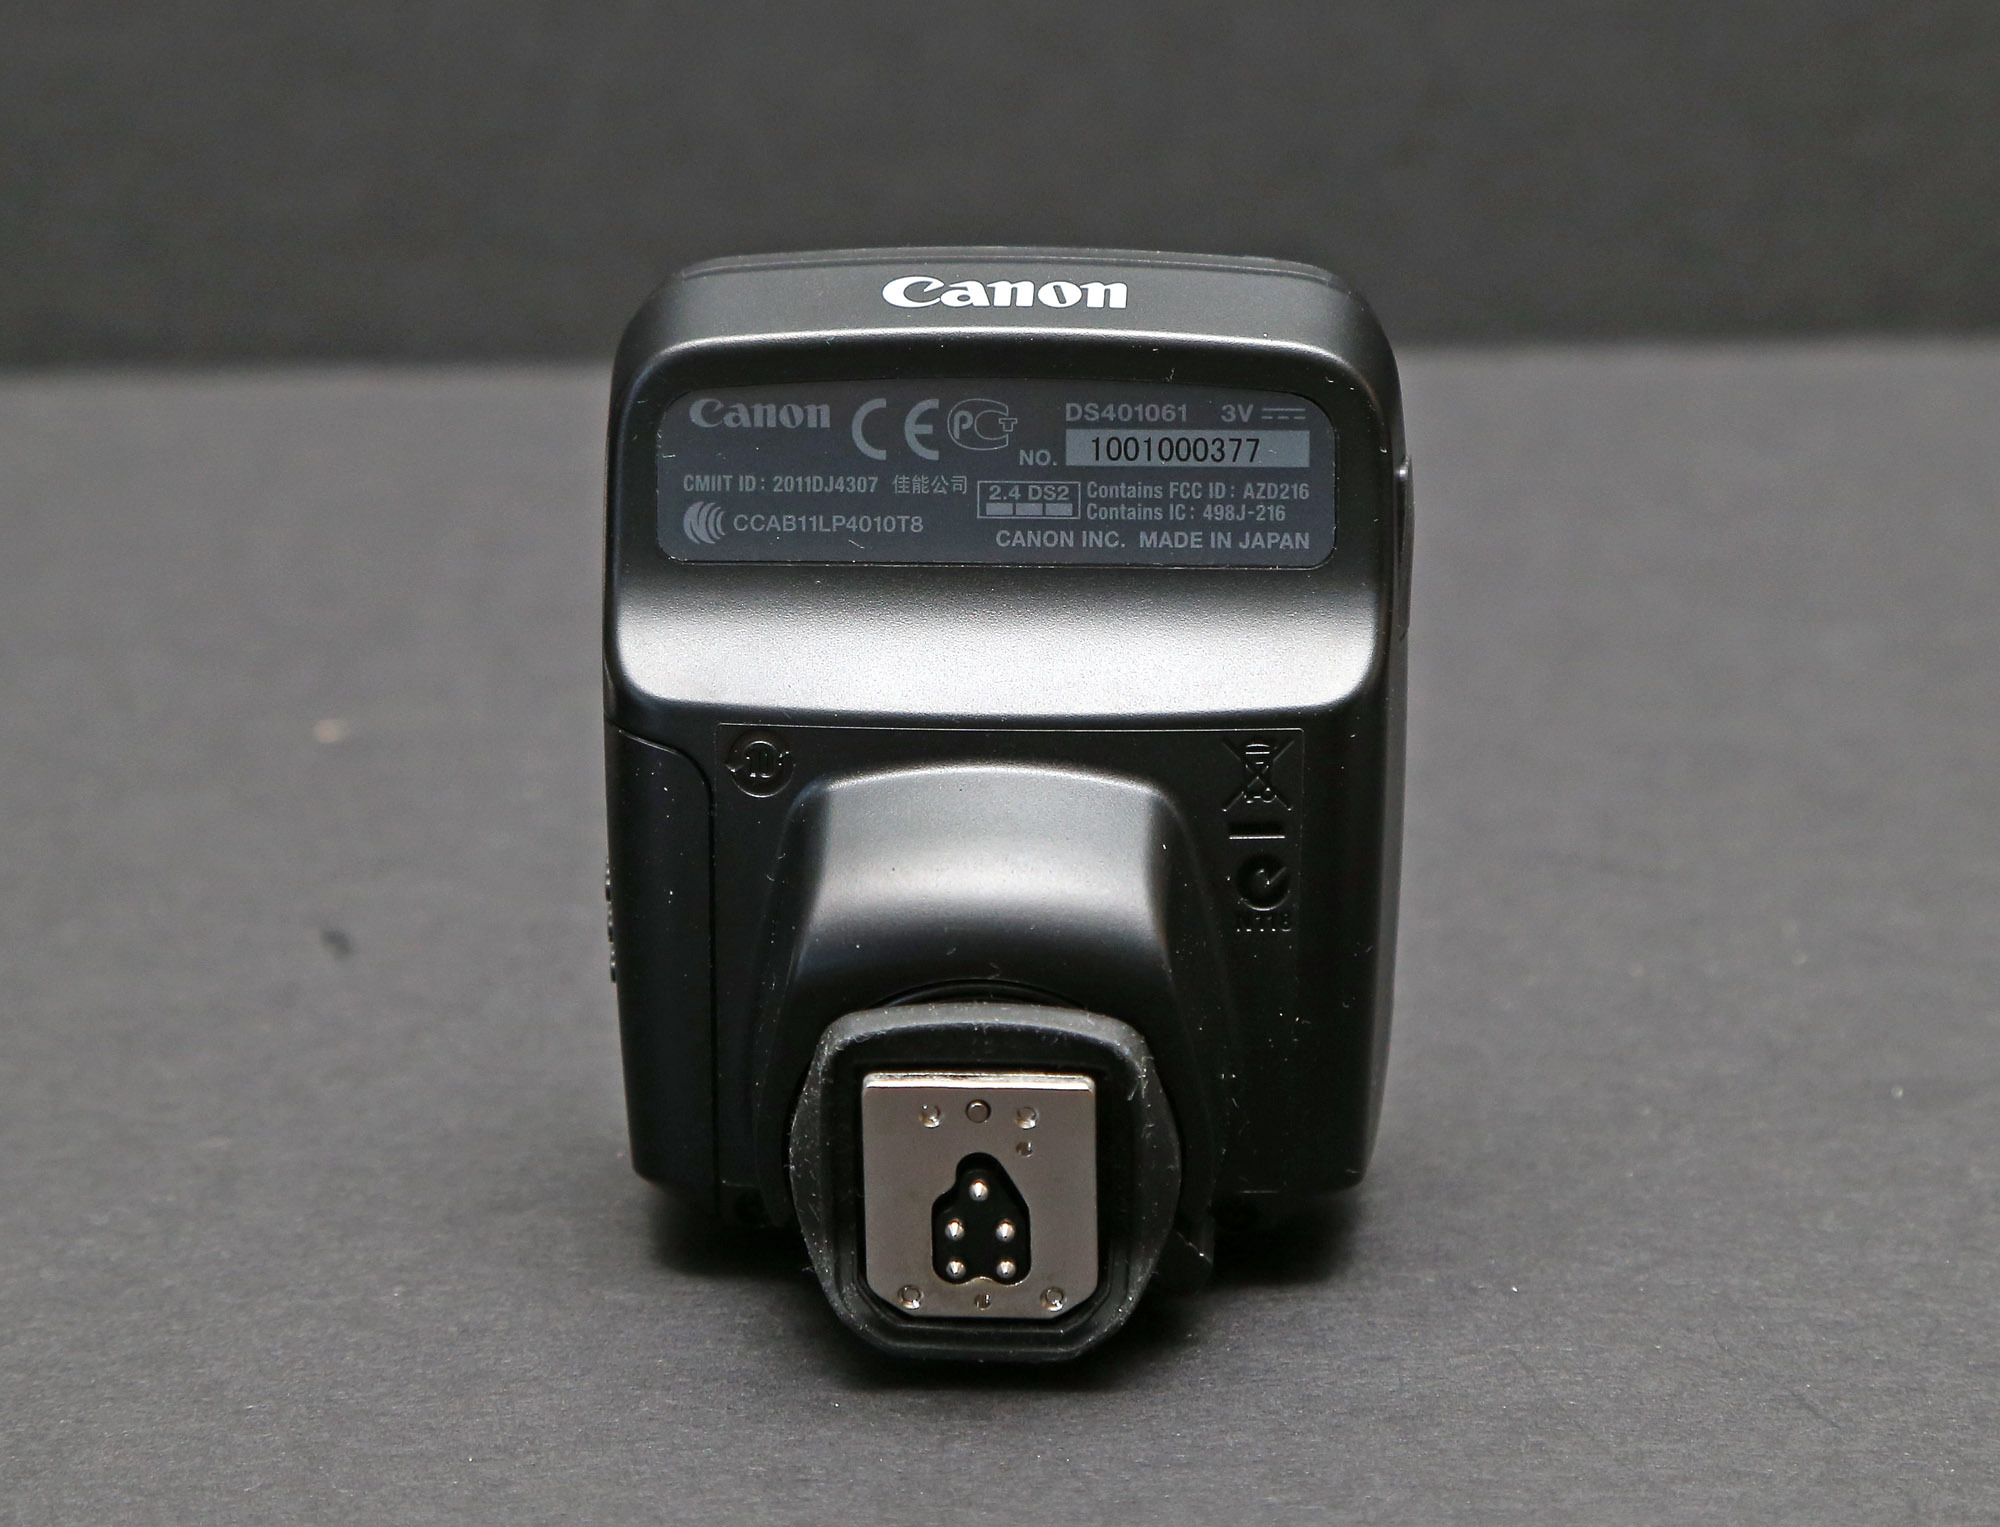 canon speedlite transmitter st e2 manual